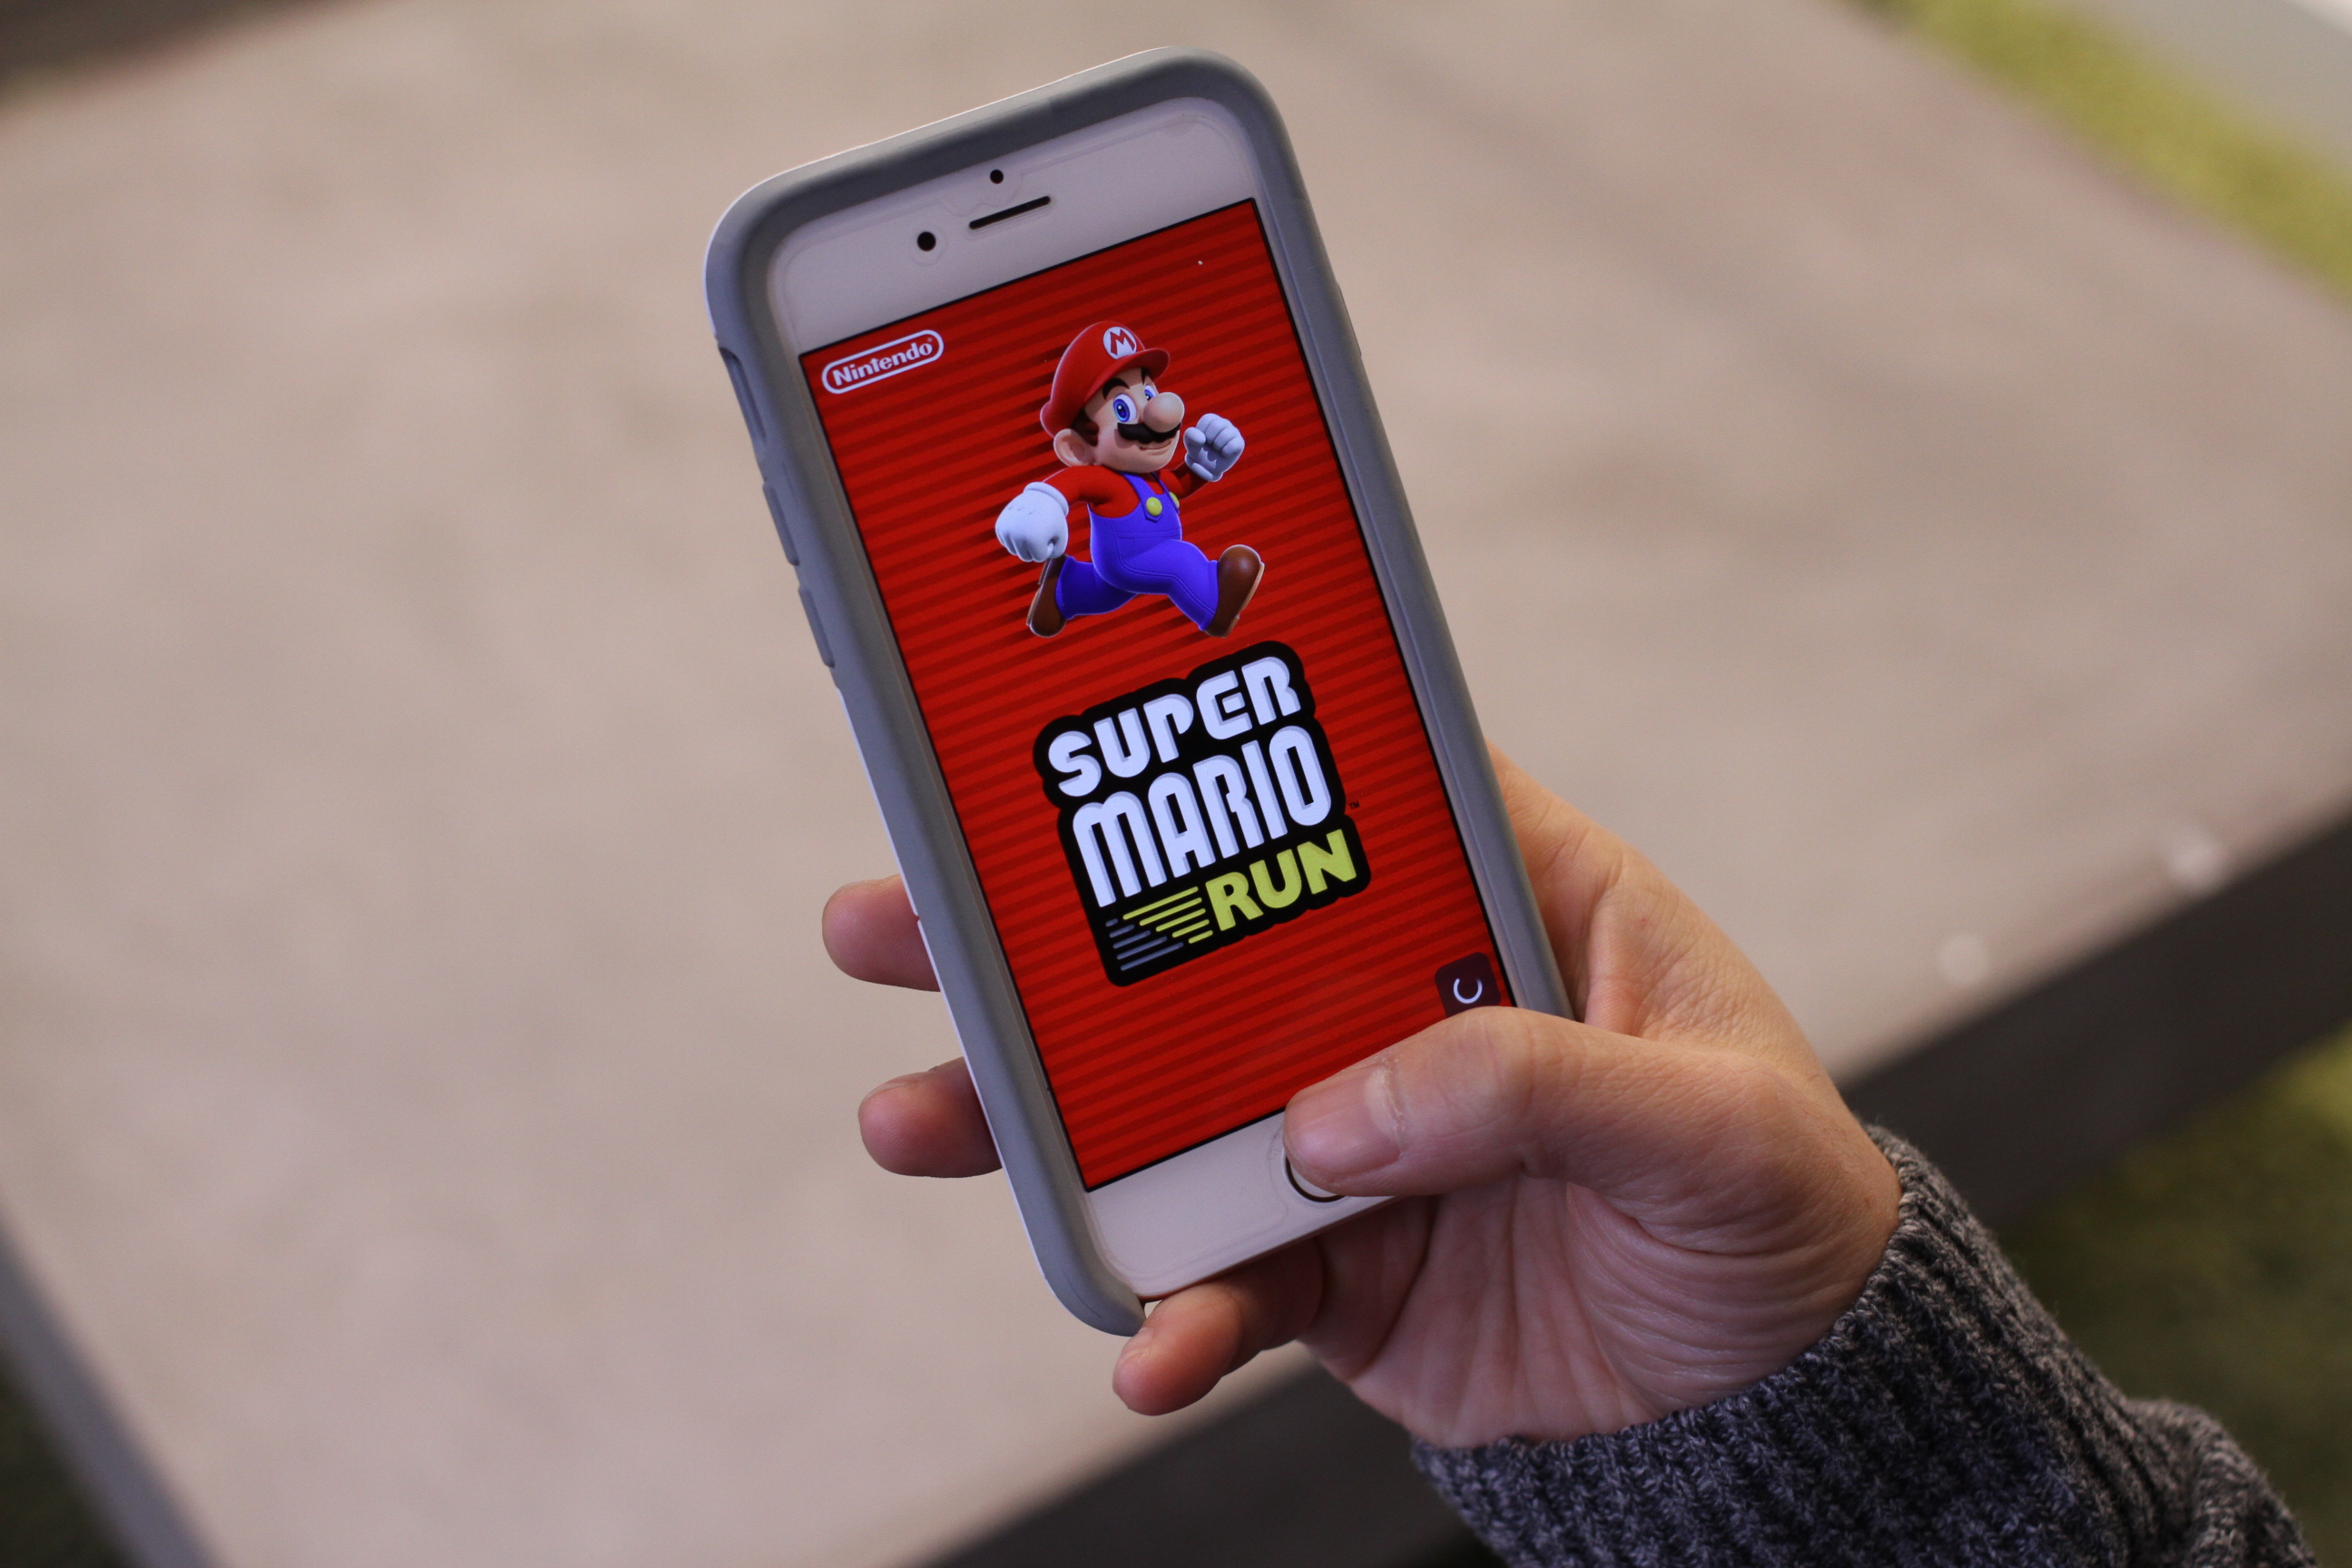 Super Mario Run is a hopeful glimpse of Nintendo's mobile ambitions